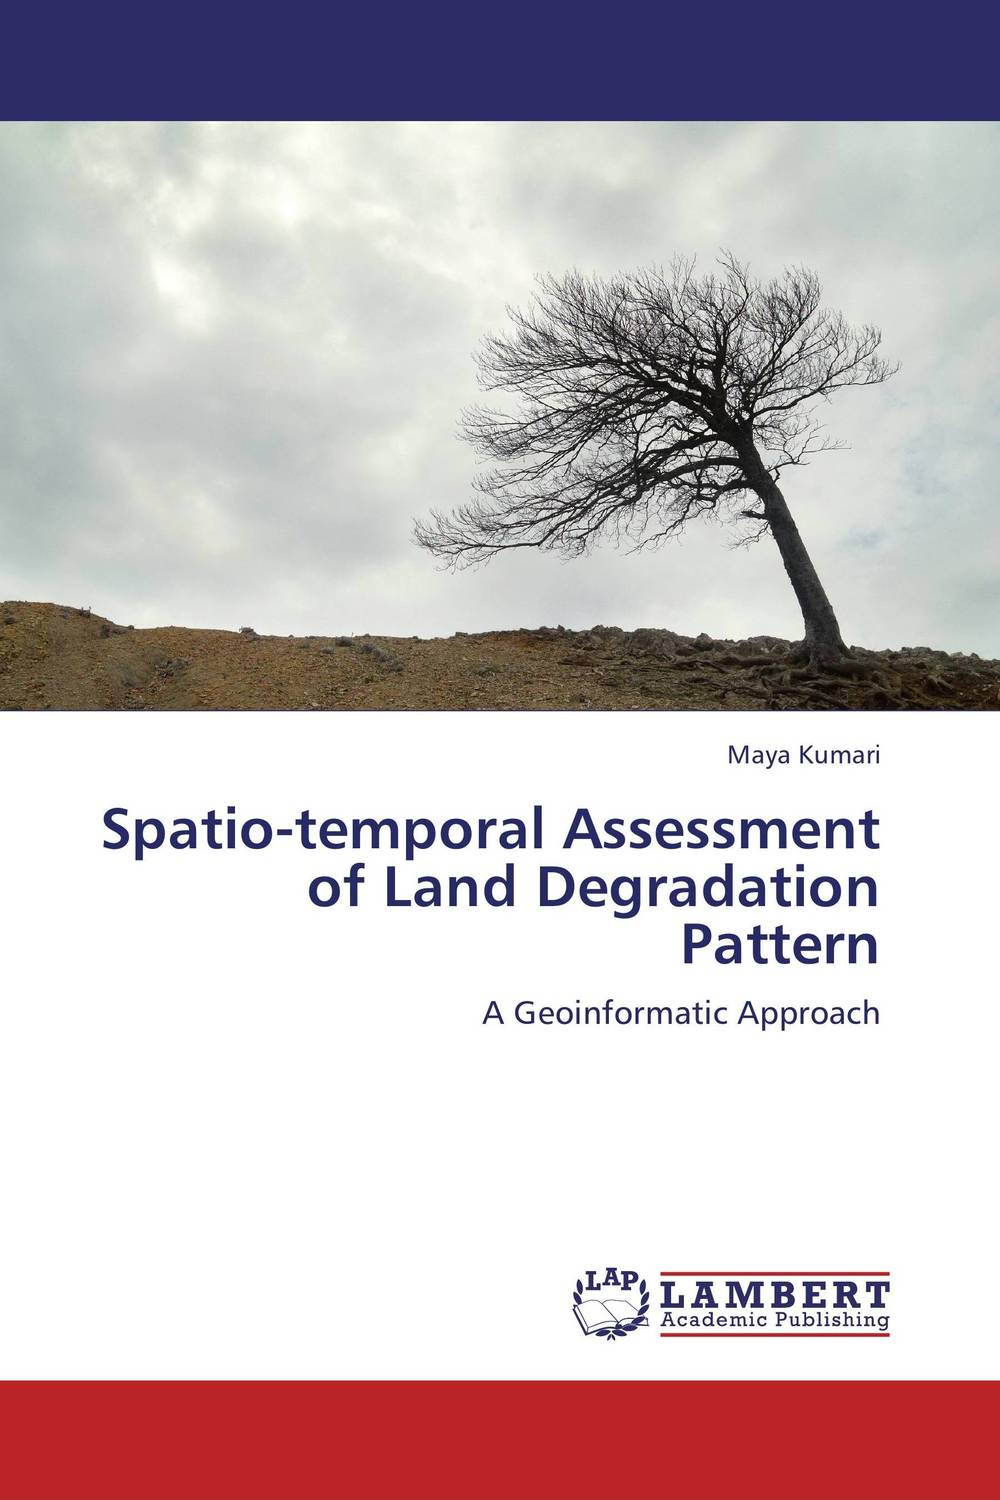 Spatio-temporal Assessment of Land Degradation Pattern rajarshi dasgupta assessment of land degradation and its restoration in jharia coalfield